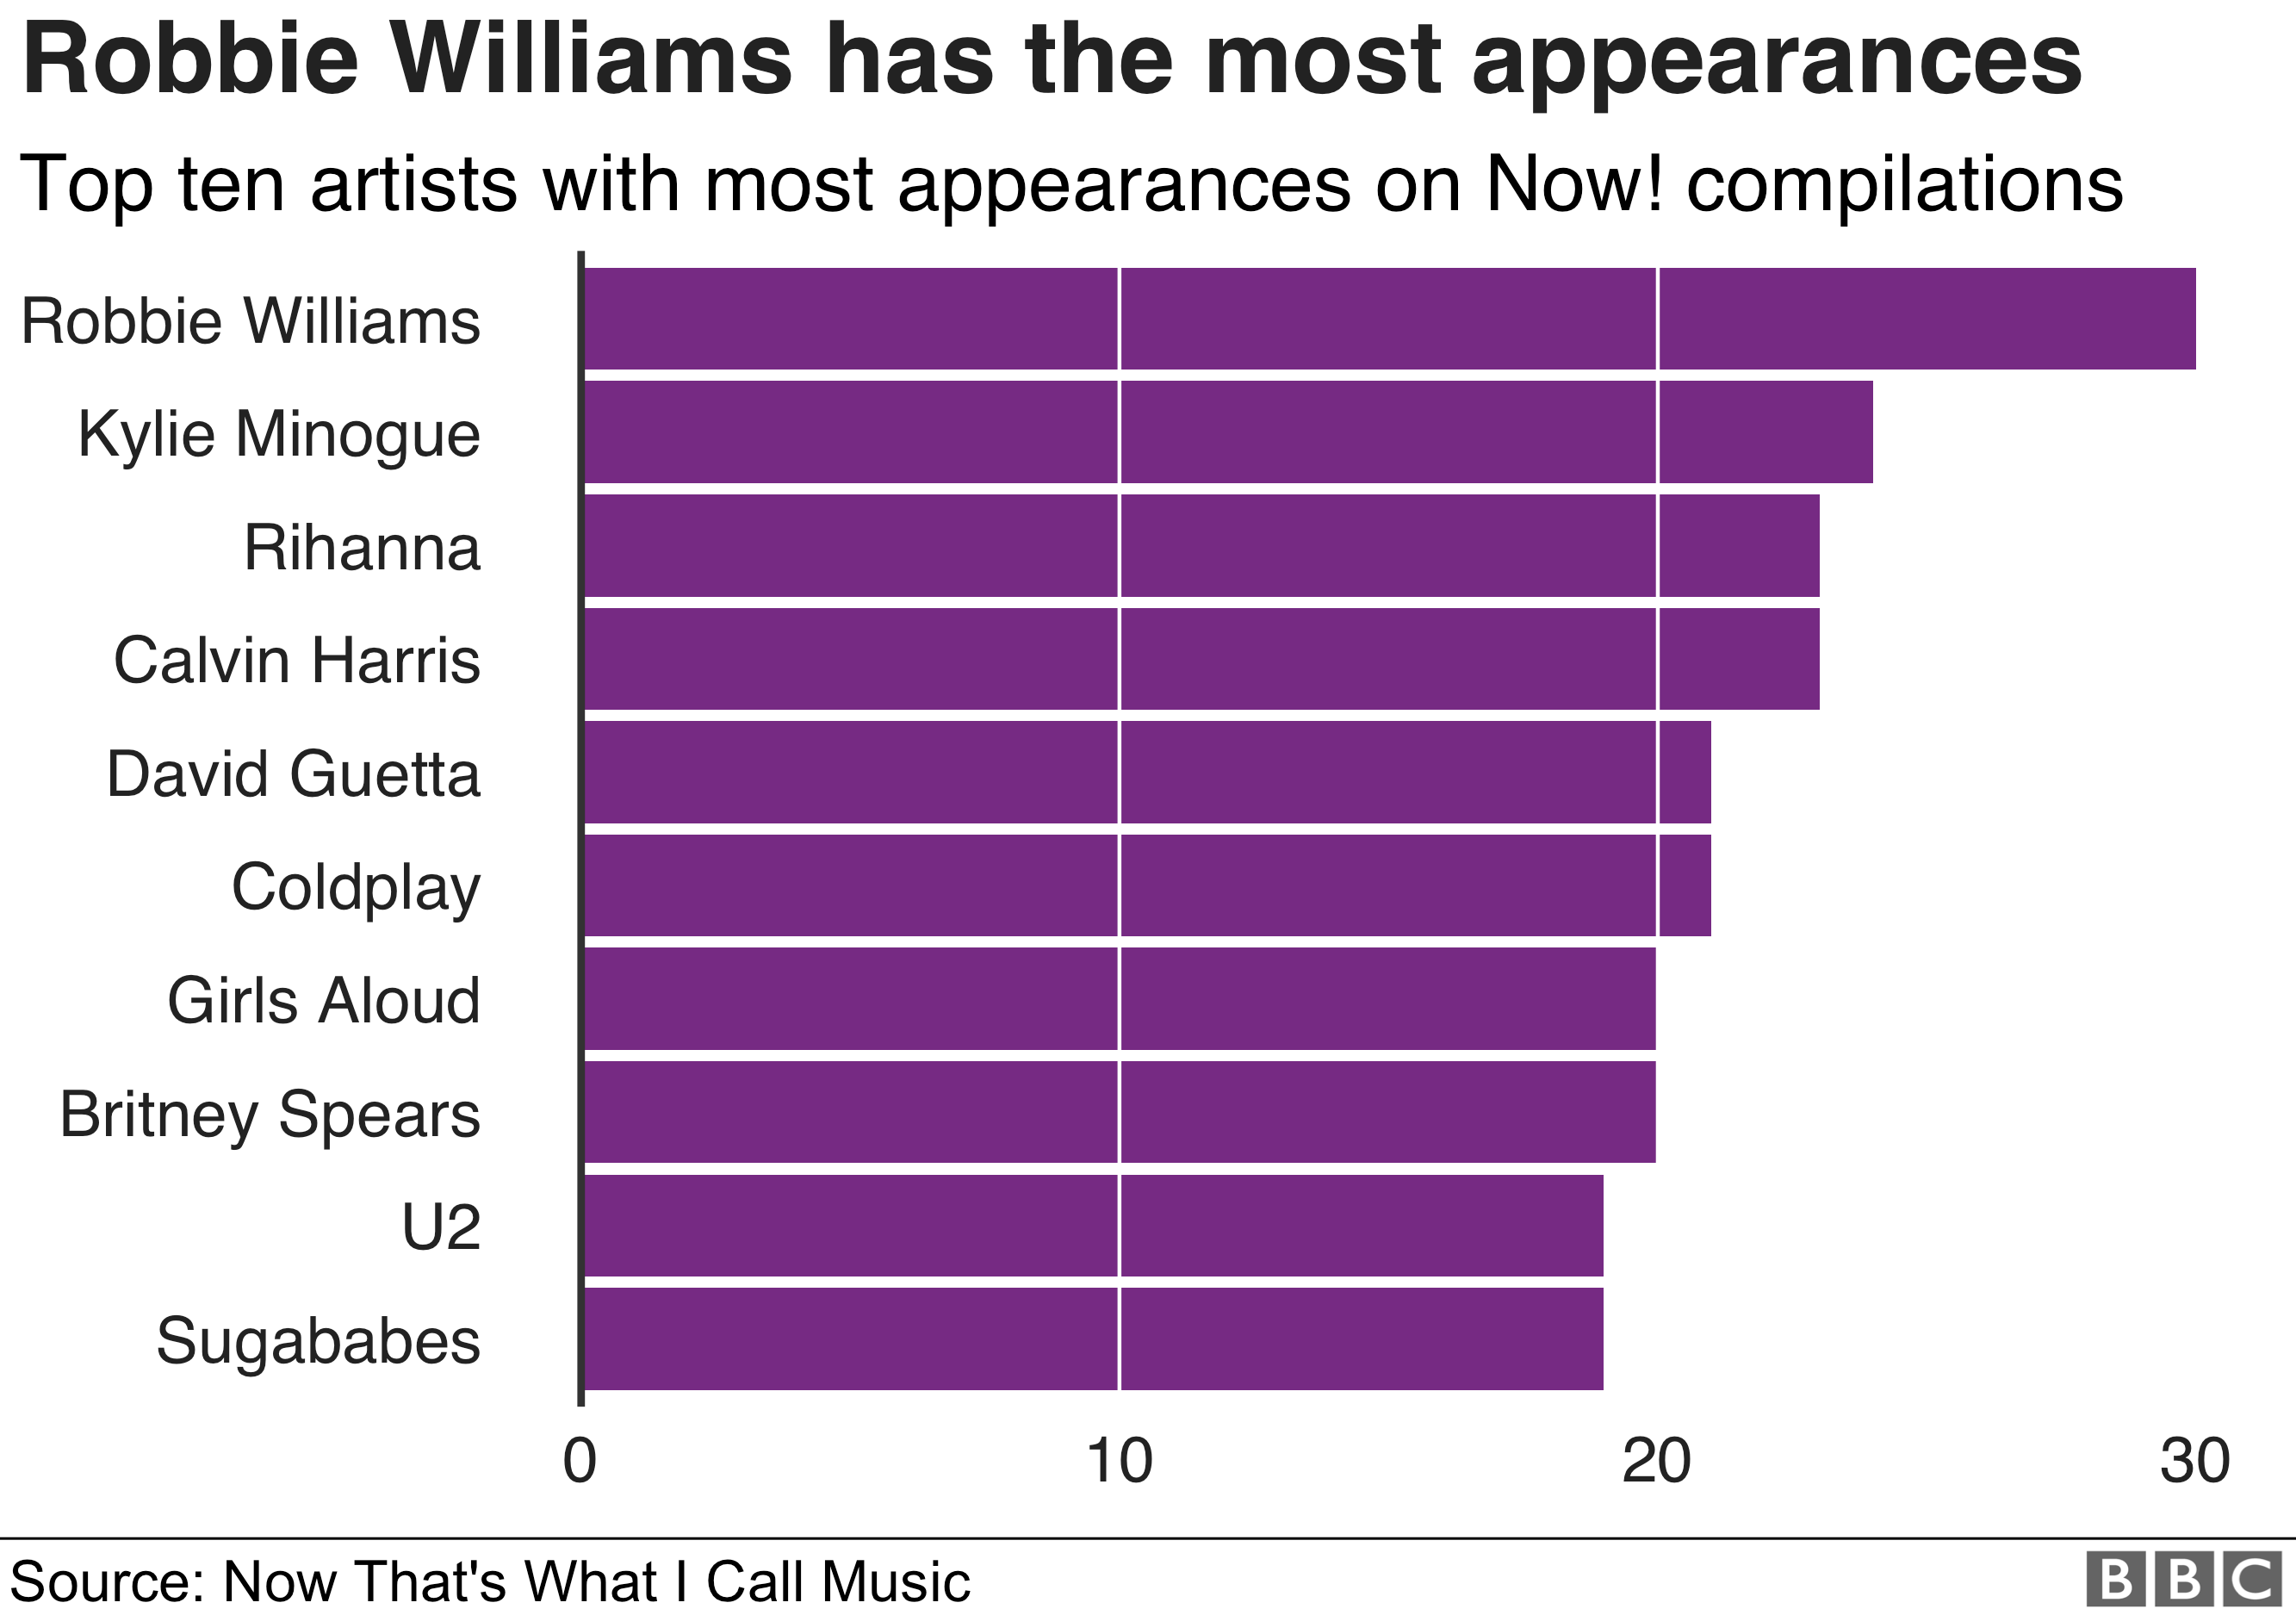 Graphic showing the artists with the most appearances on Now! compilations